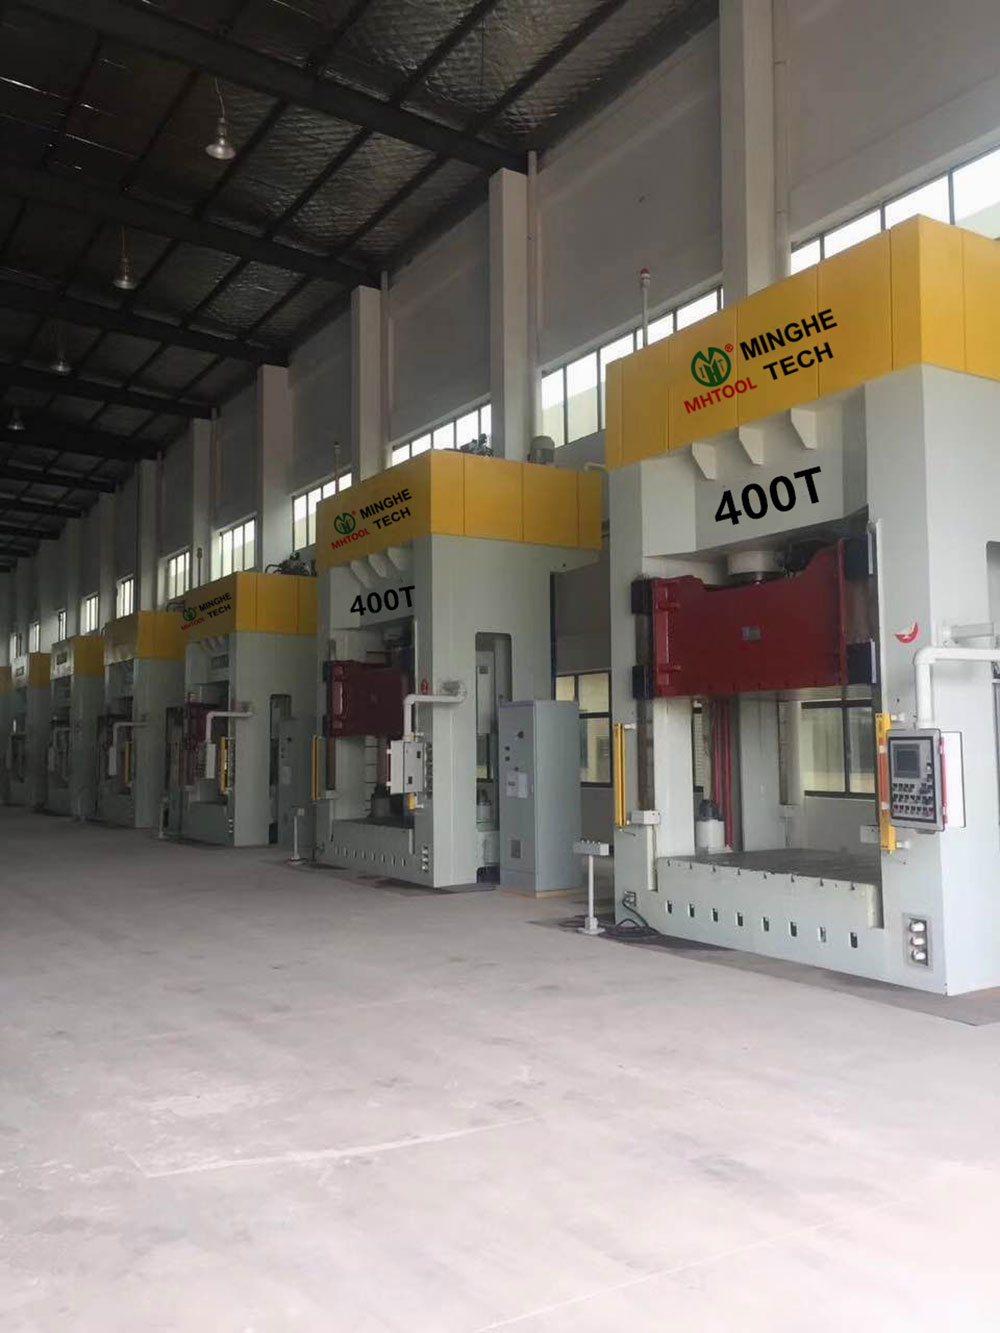 024-MingHe-Four-Column-Gantry-Stamping-Drawing-Hydraulic-Press-1- (6) 400T